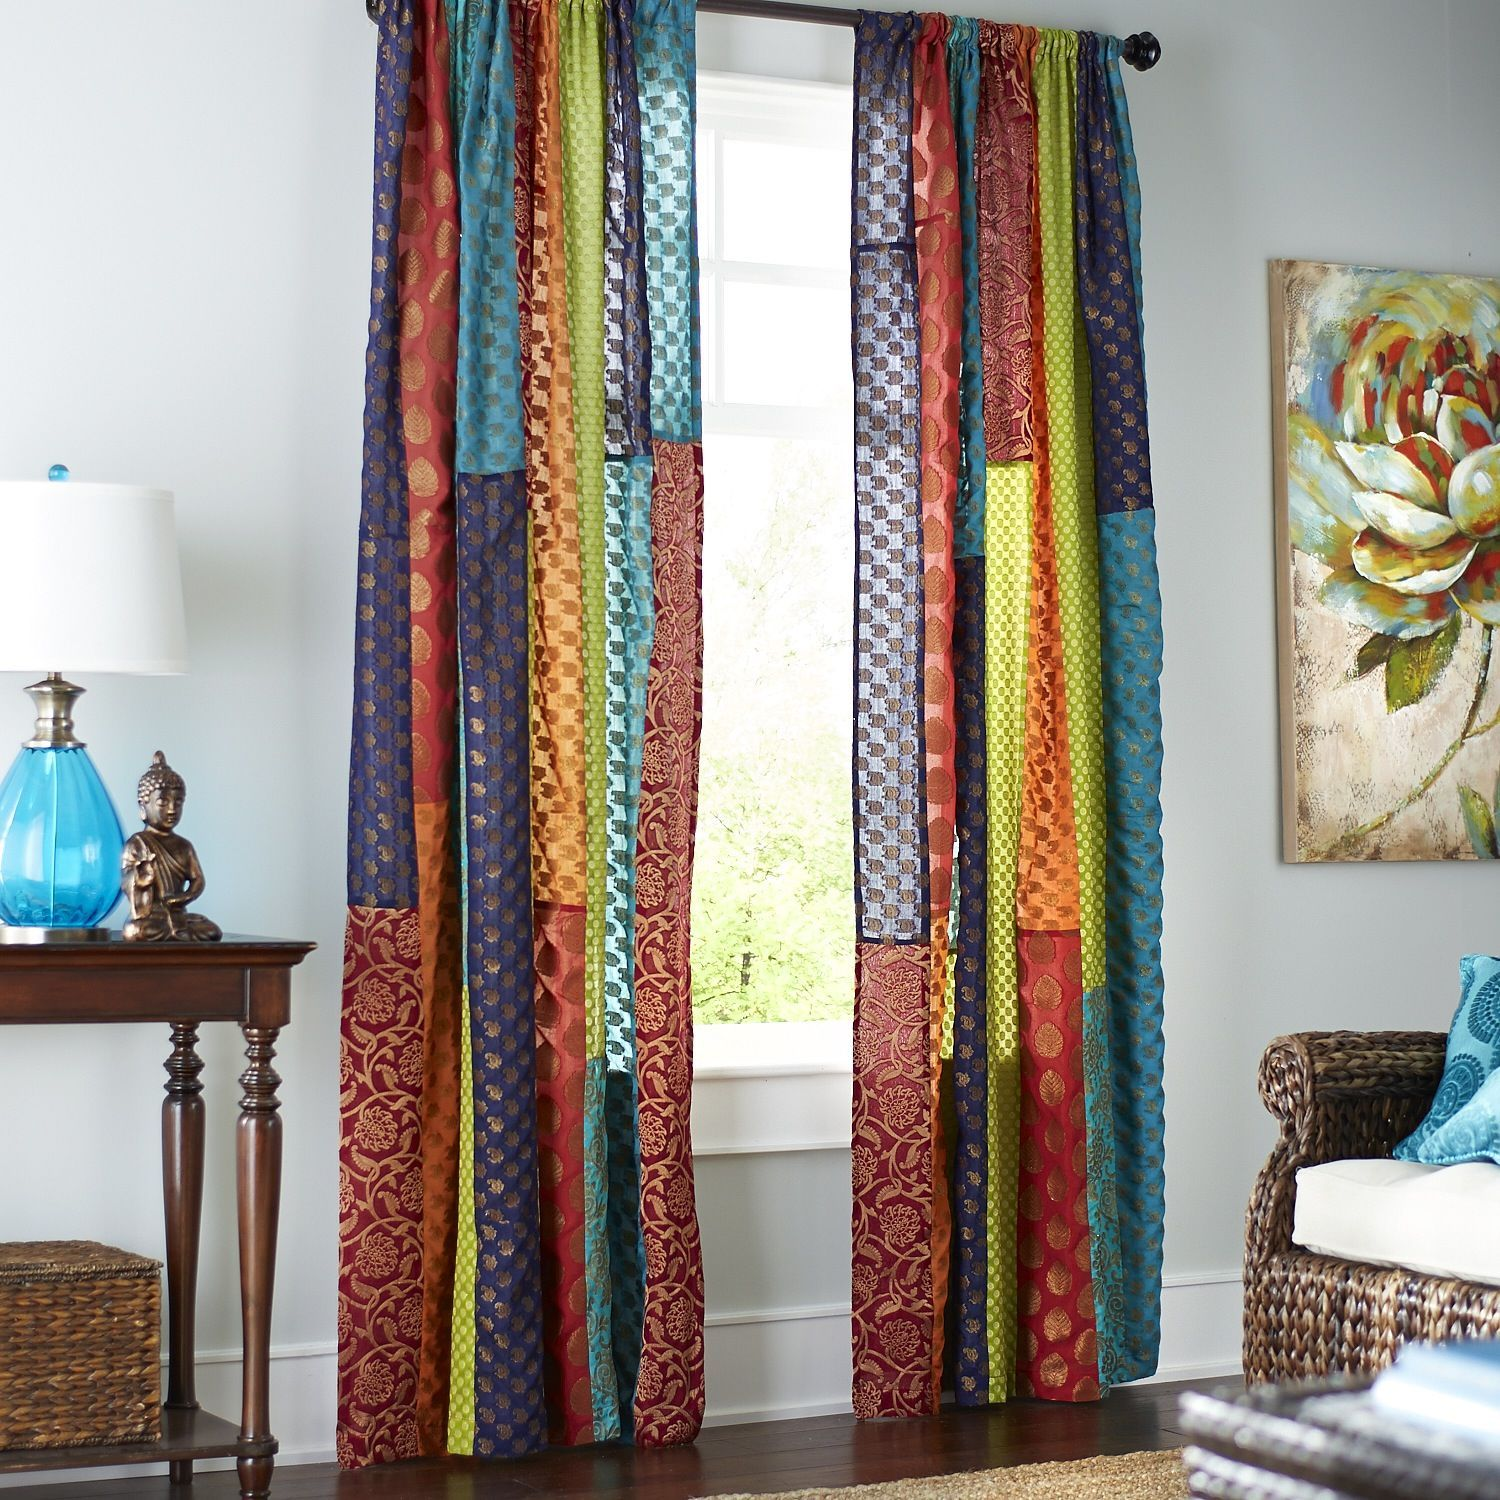 Spannende Fensterdeko Gardinen Ideen Erlene Window Treatments Sari Patchwork Curtain Pier 1 Imports Vorhänge